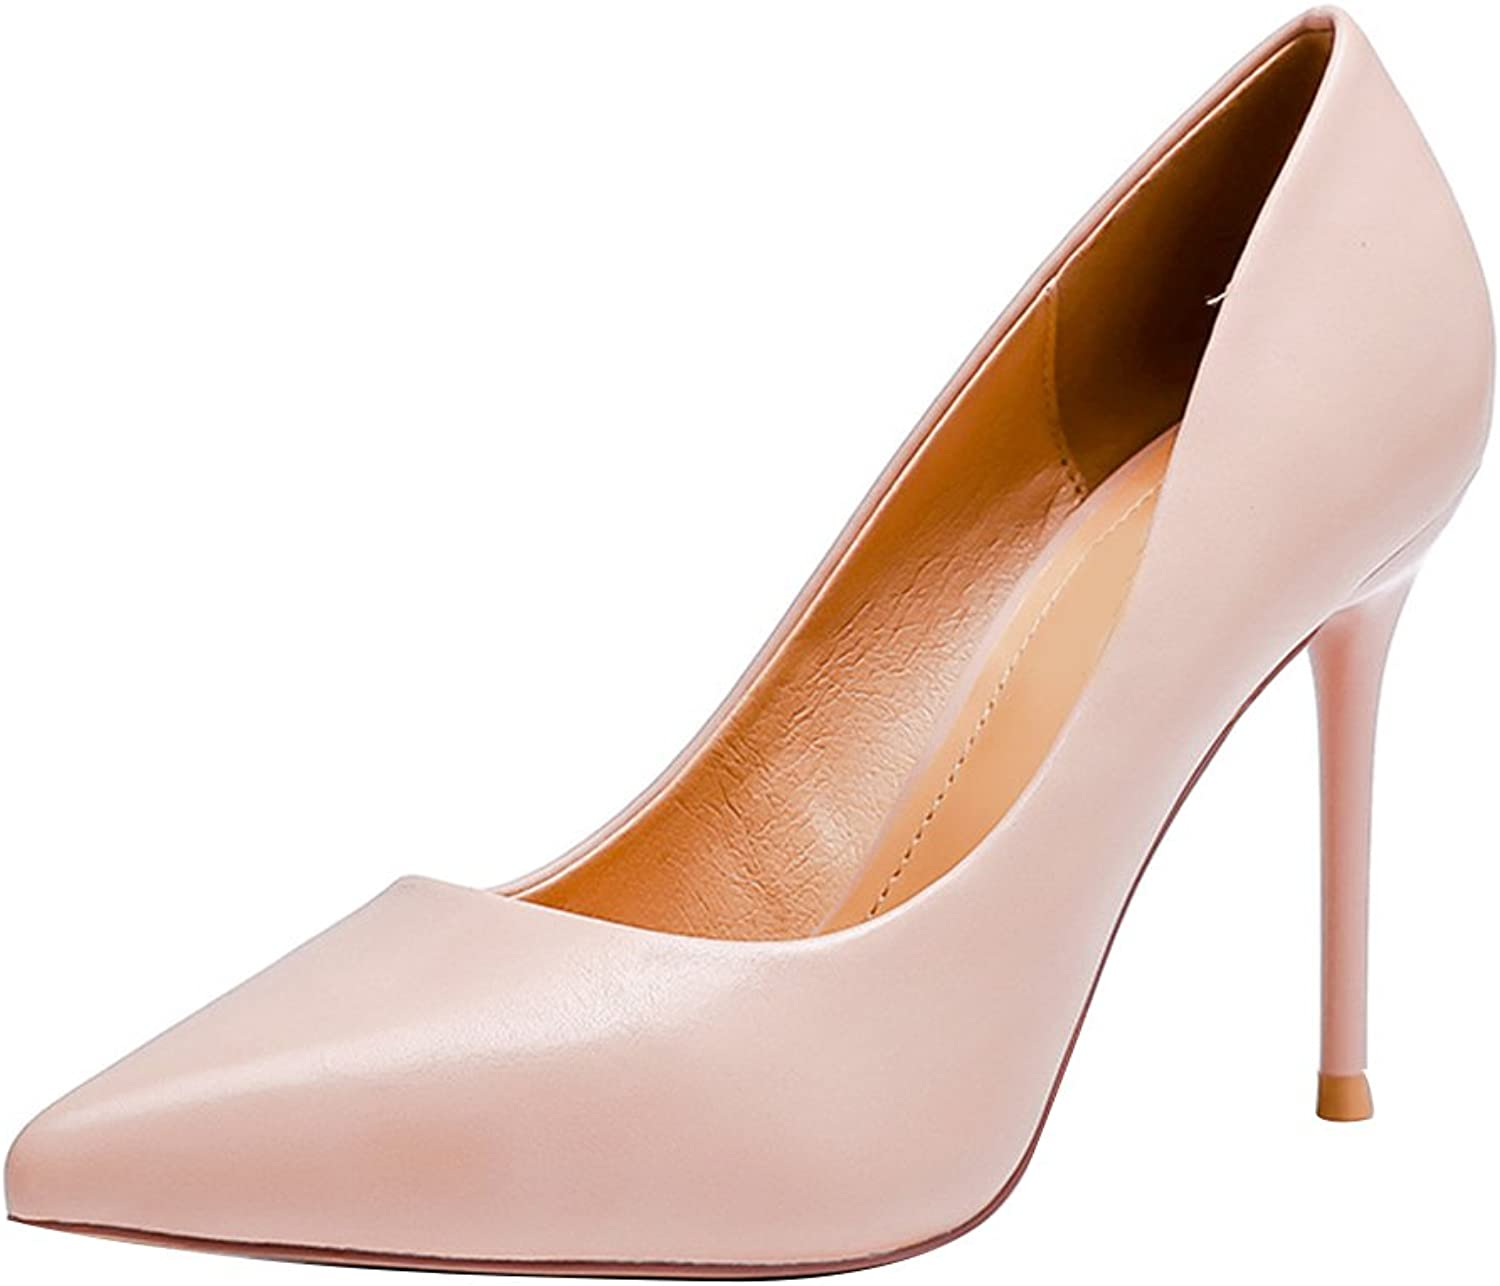 Kyle Walsh Pa Women Classic Pointed Toe Stiletto High Heels Dress Pumps